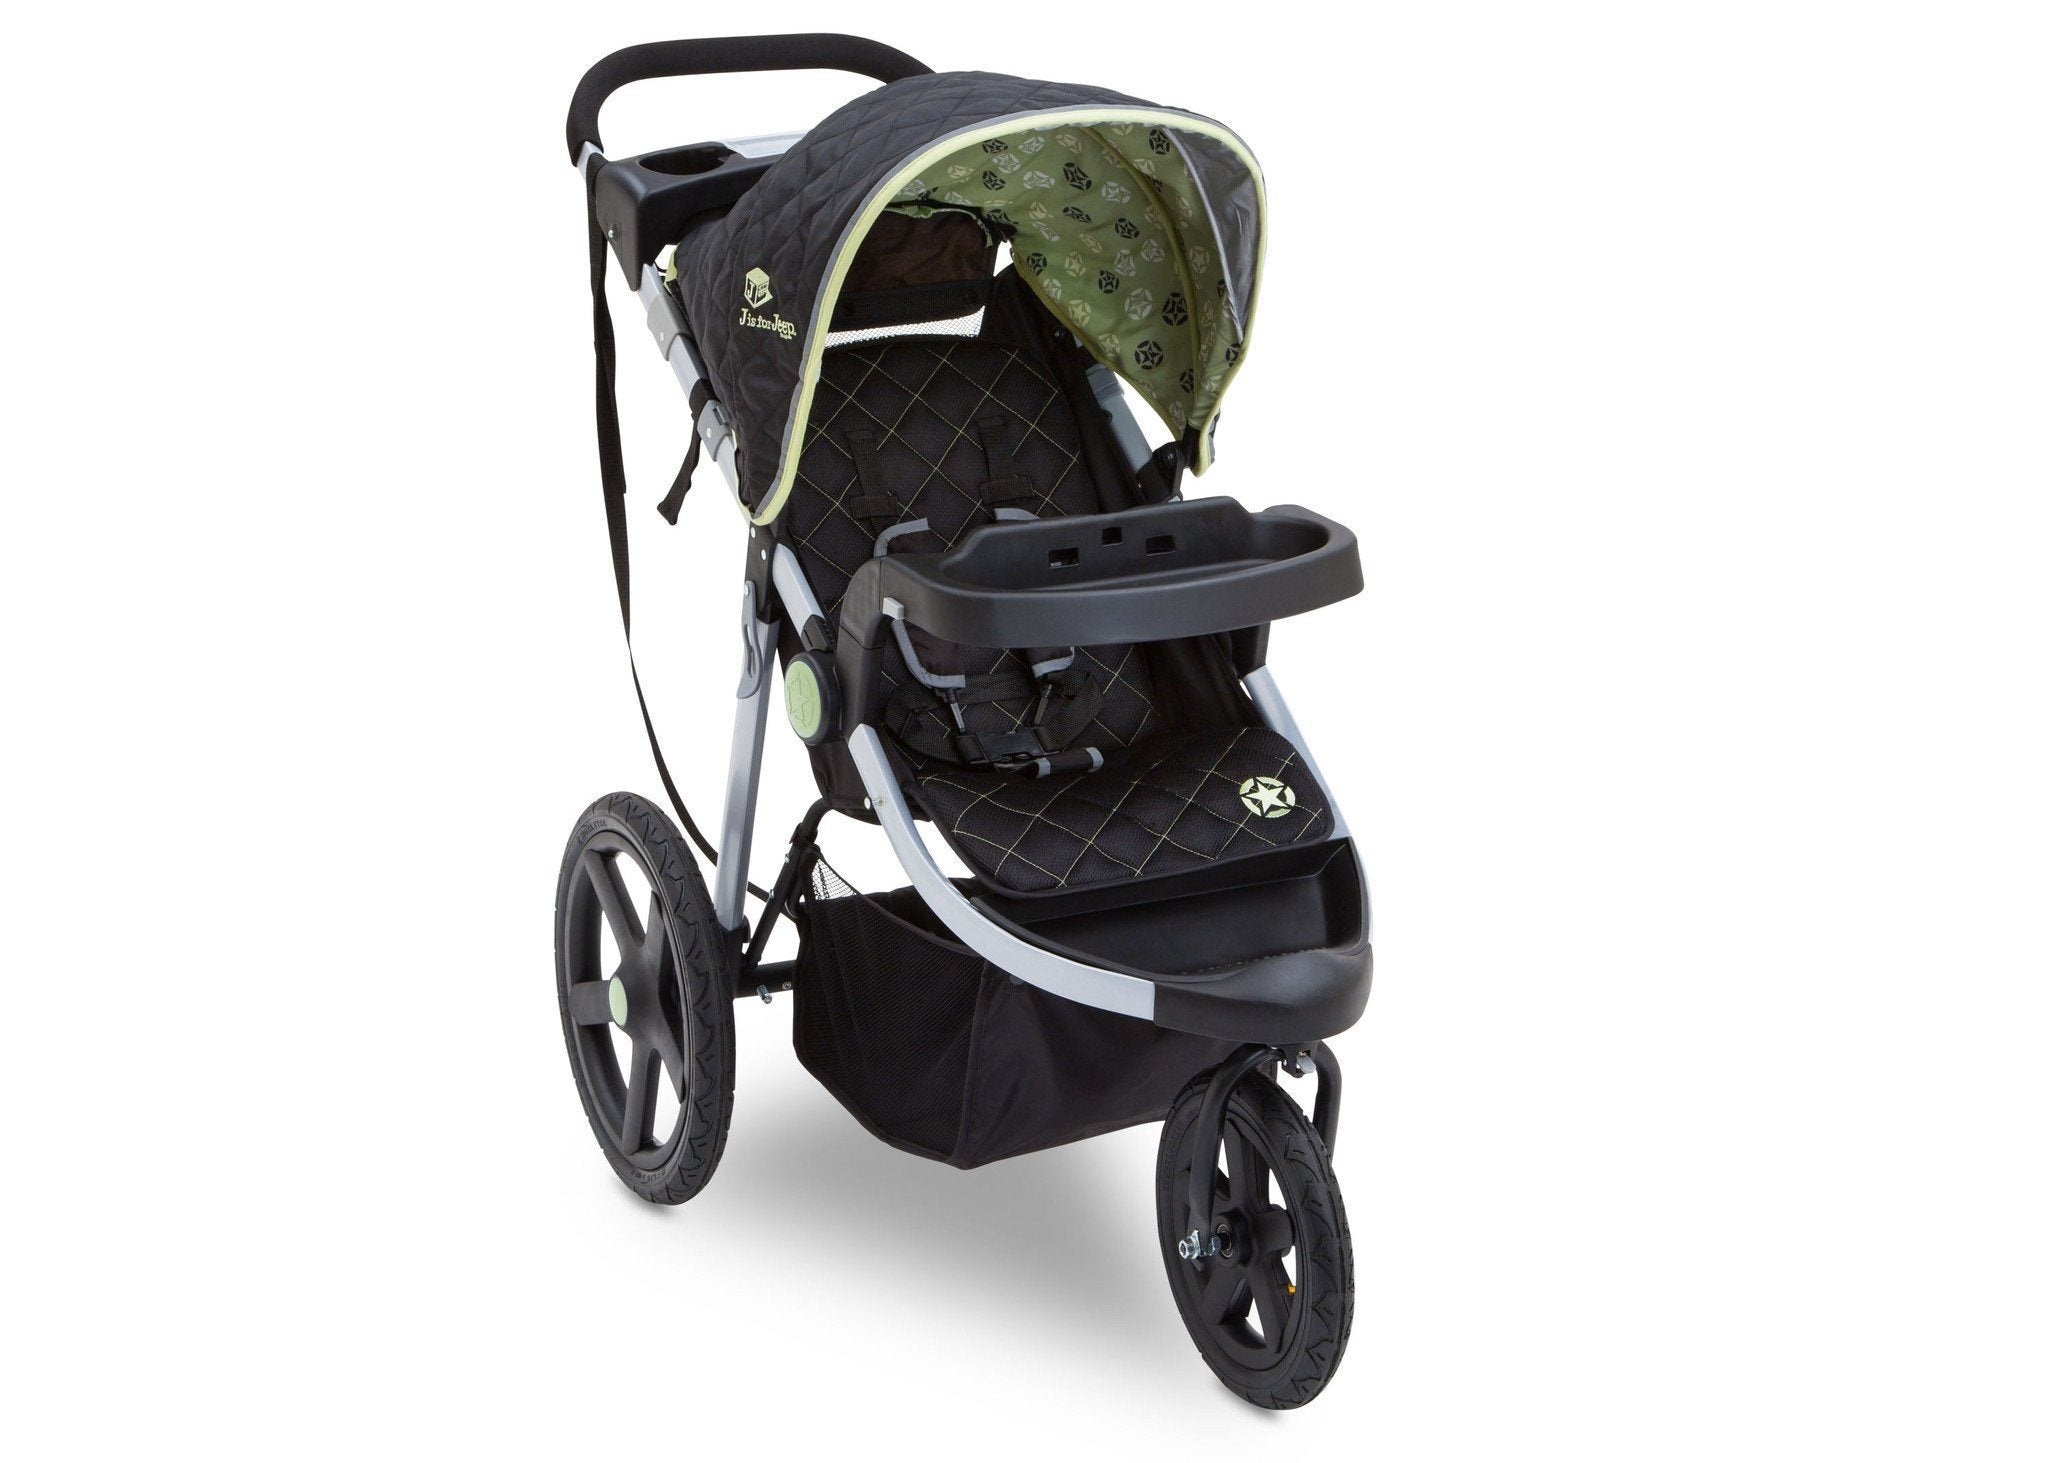 Jeep Adventure All Terrain Jogger Stroller by Delta Children, Destination (314), with extendable and quilted European canopy